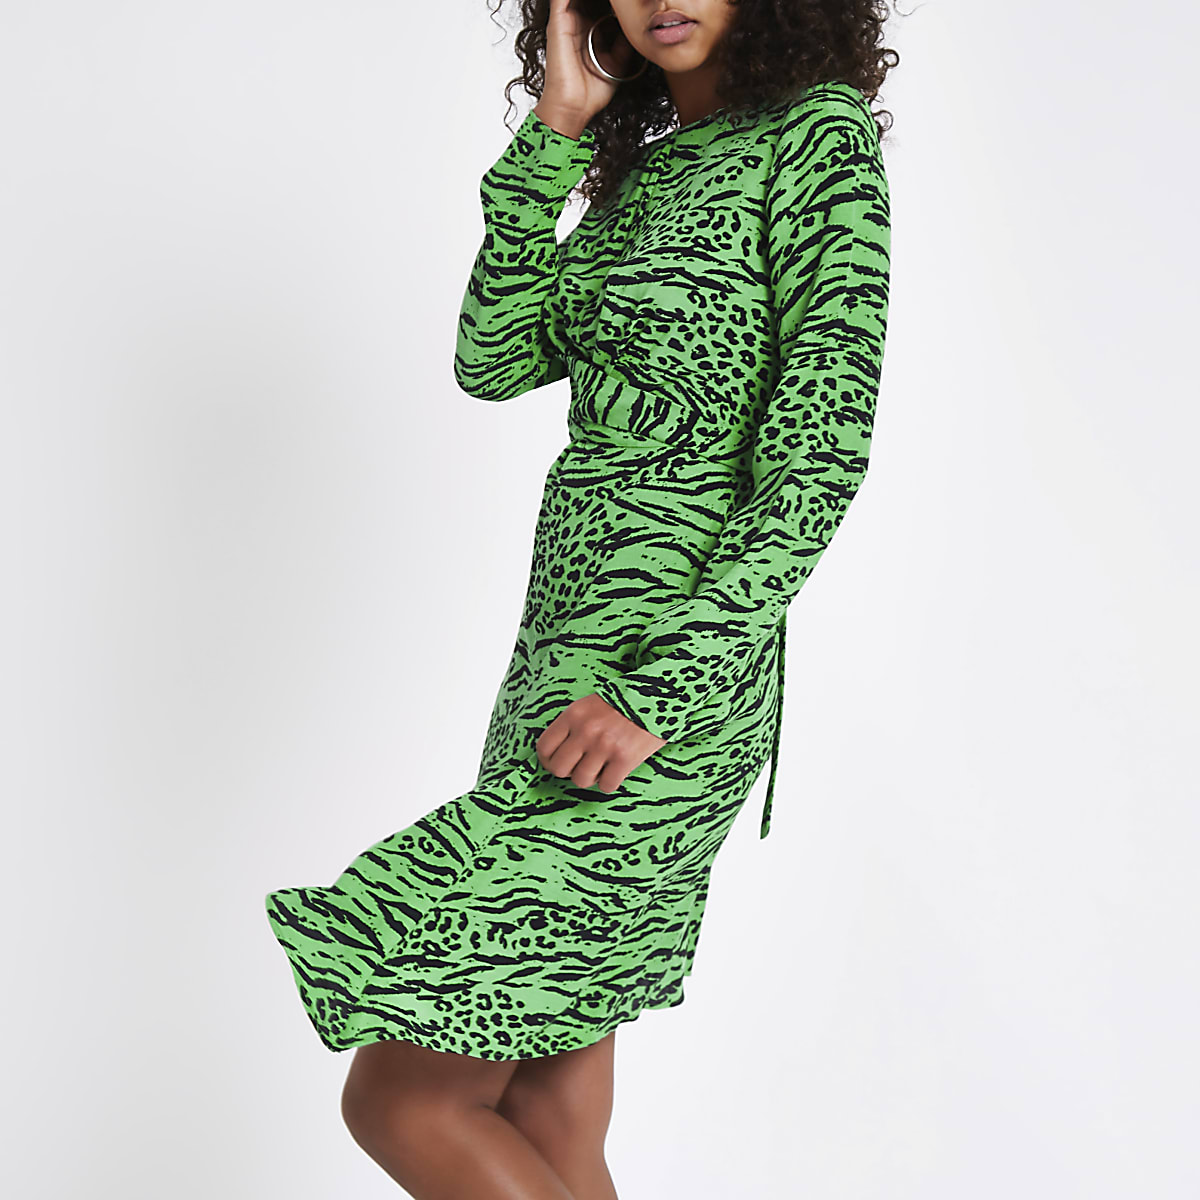 Green leopard print cross front midi dress